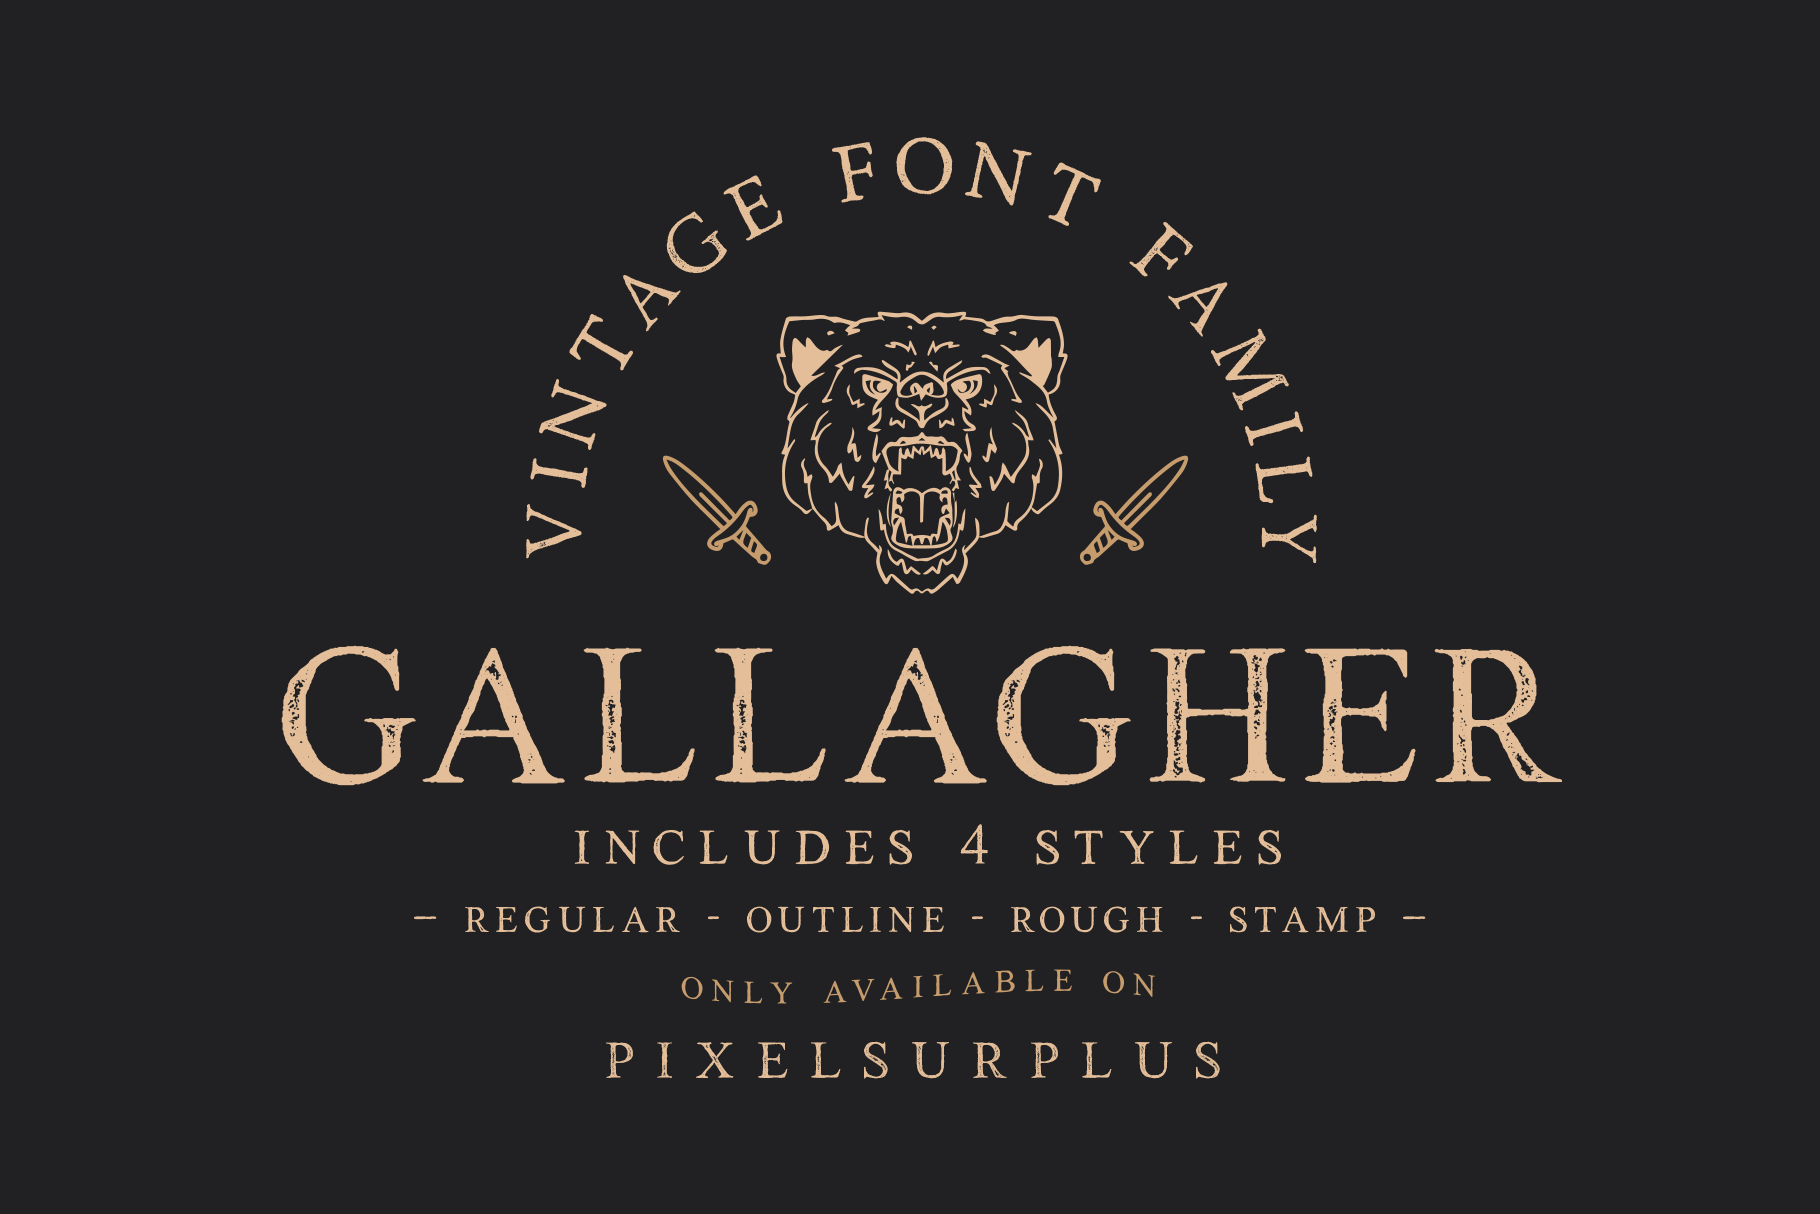 Gallagher Is A Handcrafted Vintage Font Available In 4 Styles Regular Rough Stamp Outline That Makes Gallaghe Vintage Fonts Serif Fonts Serif Typeface